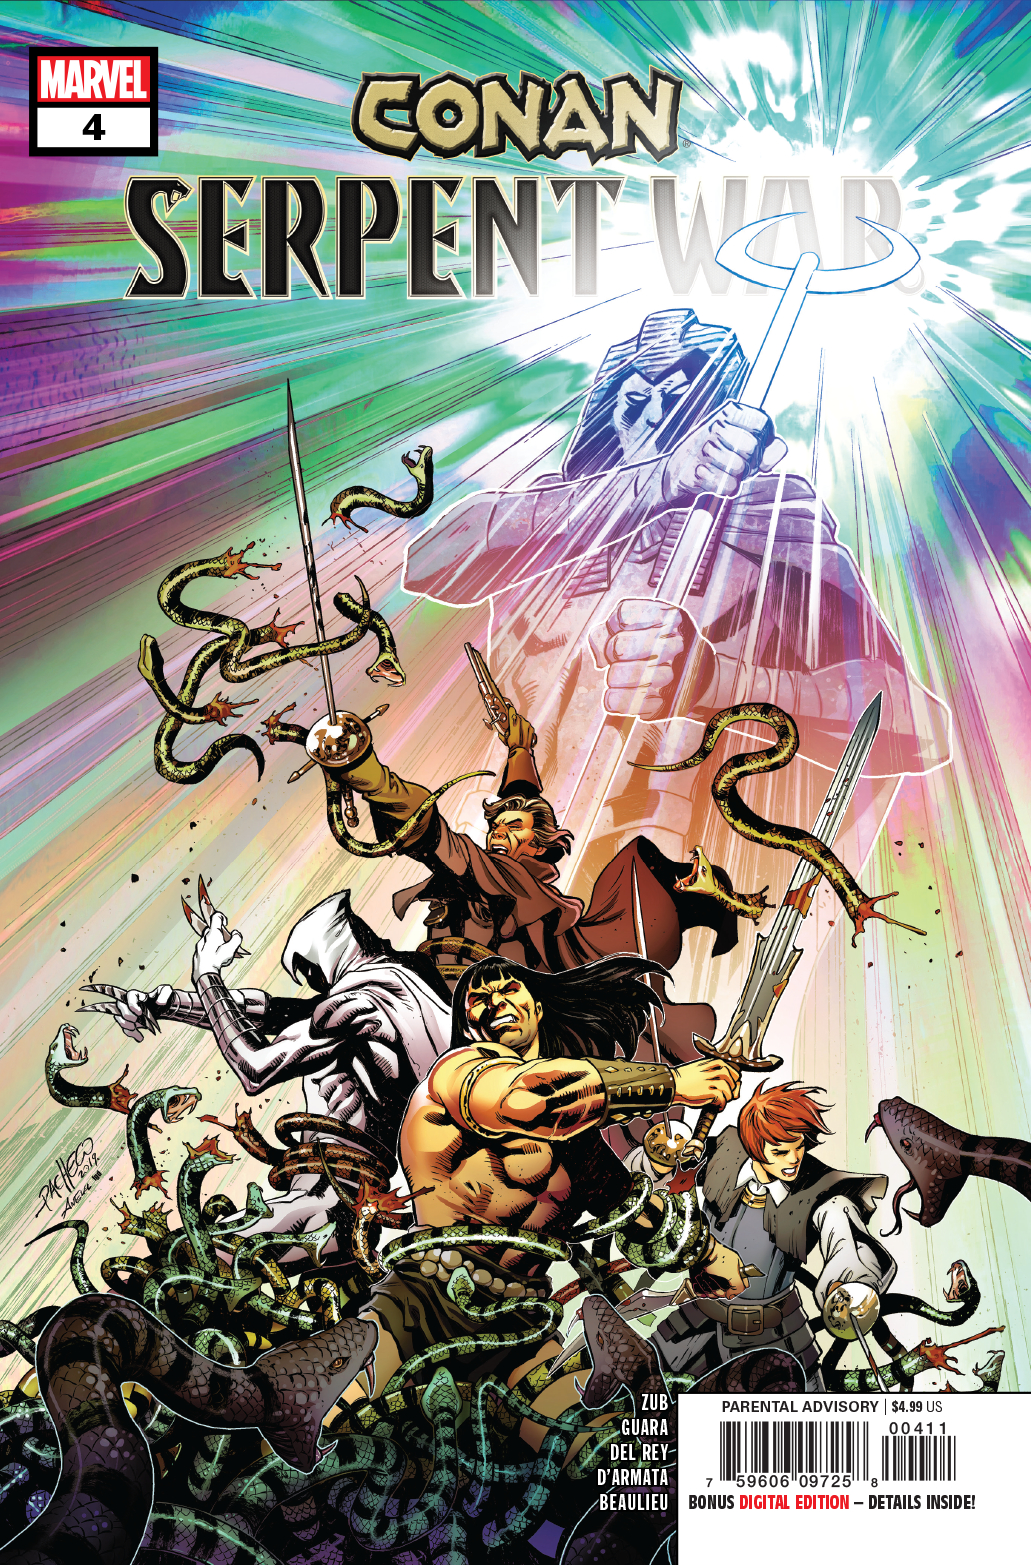 CONAN SERPENT WAR #4 (OF 4)